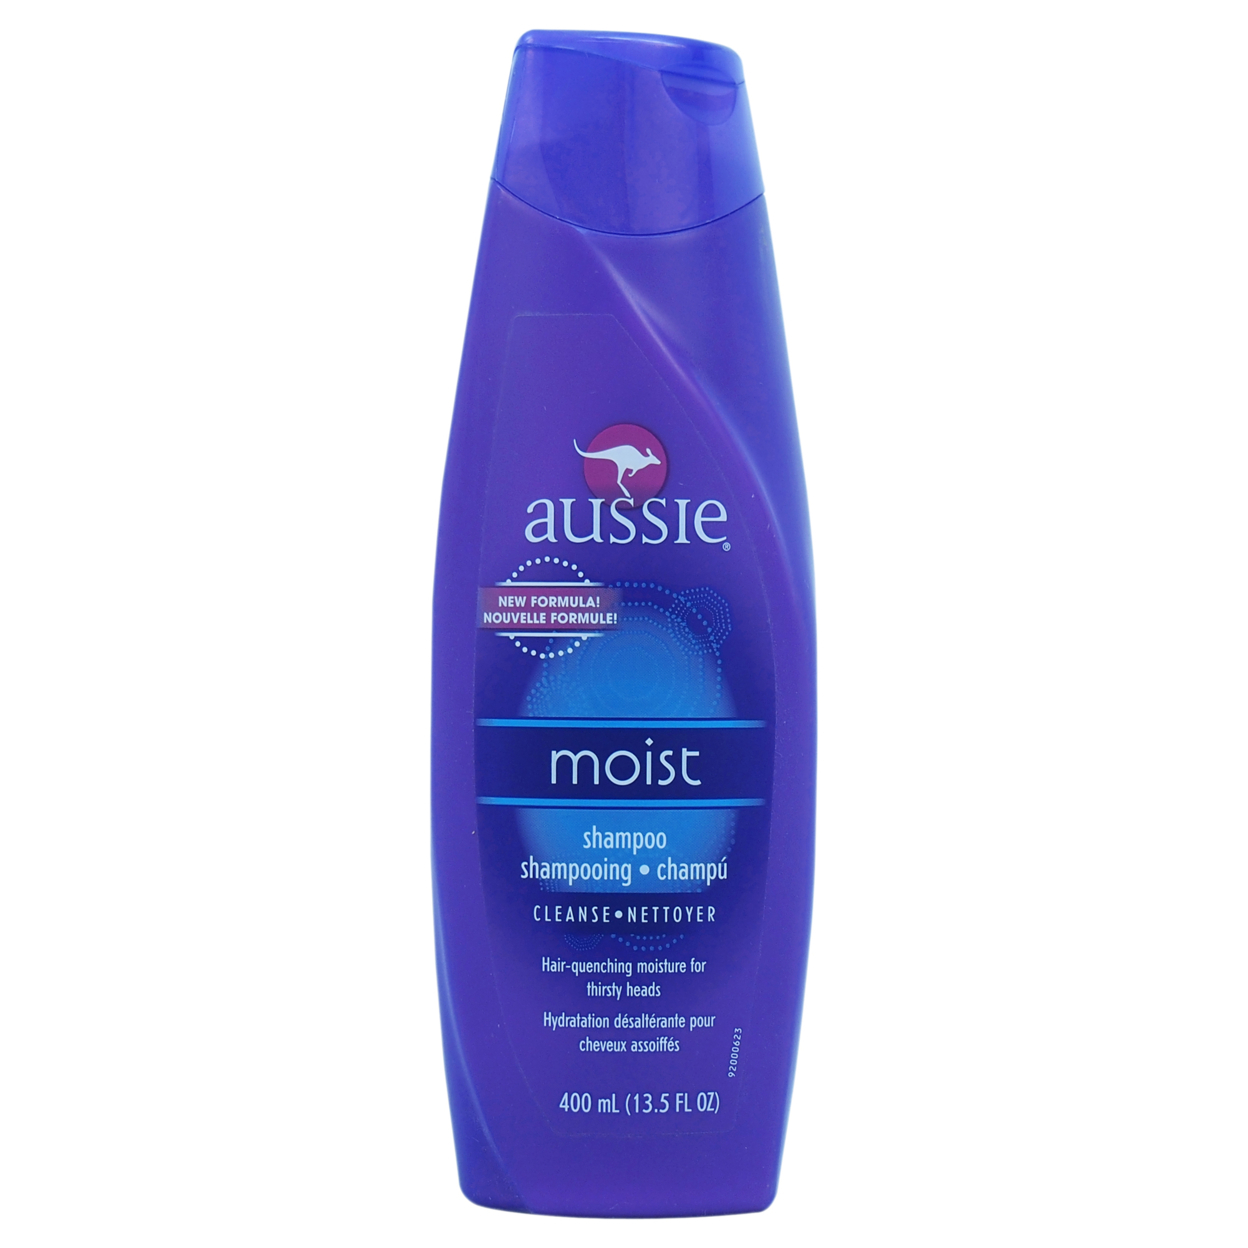 Aussie Moist Shampoo by Aussie for Unisex - 13.5 oz Shampoo 5898e189c98fc450936d67a5